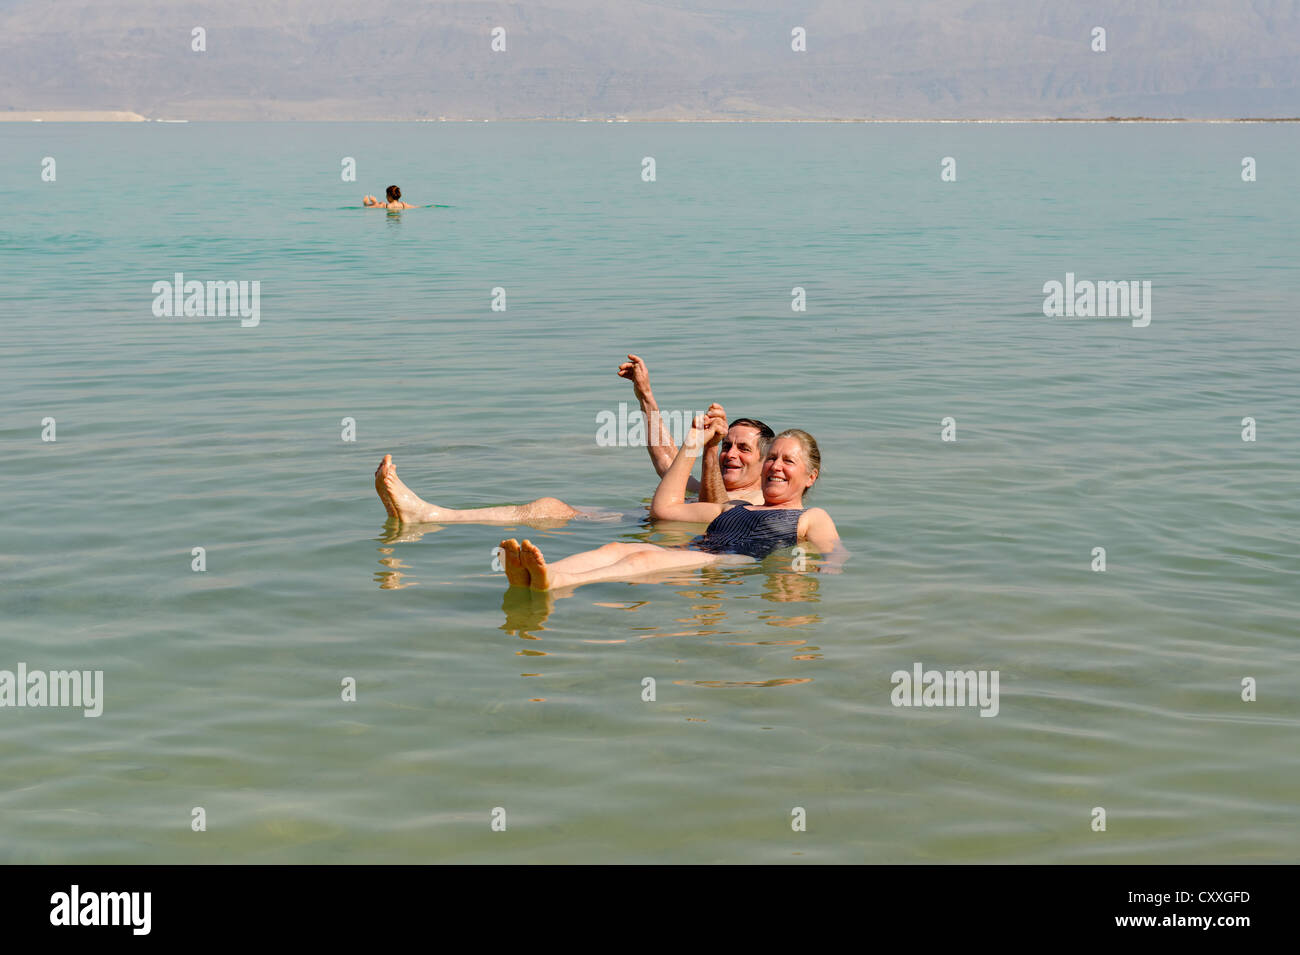 Bathing, swimming tourists in Ein Bokek, En Boqeq, Dead Sea, Israel, Middle East - Stock Image